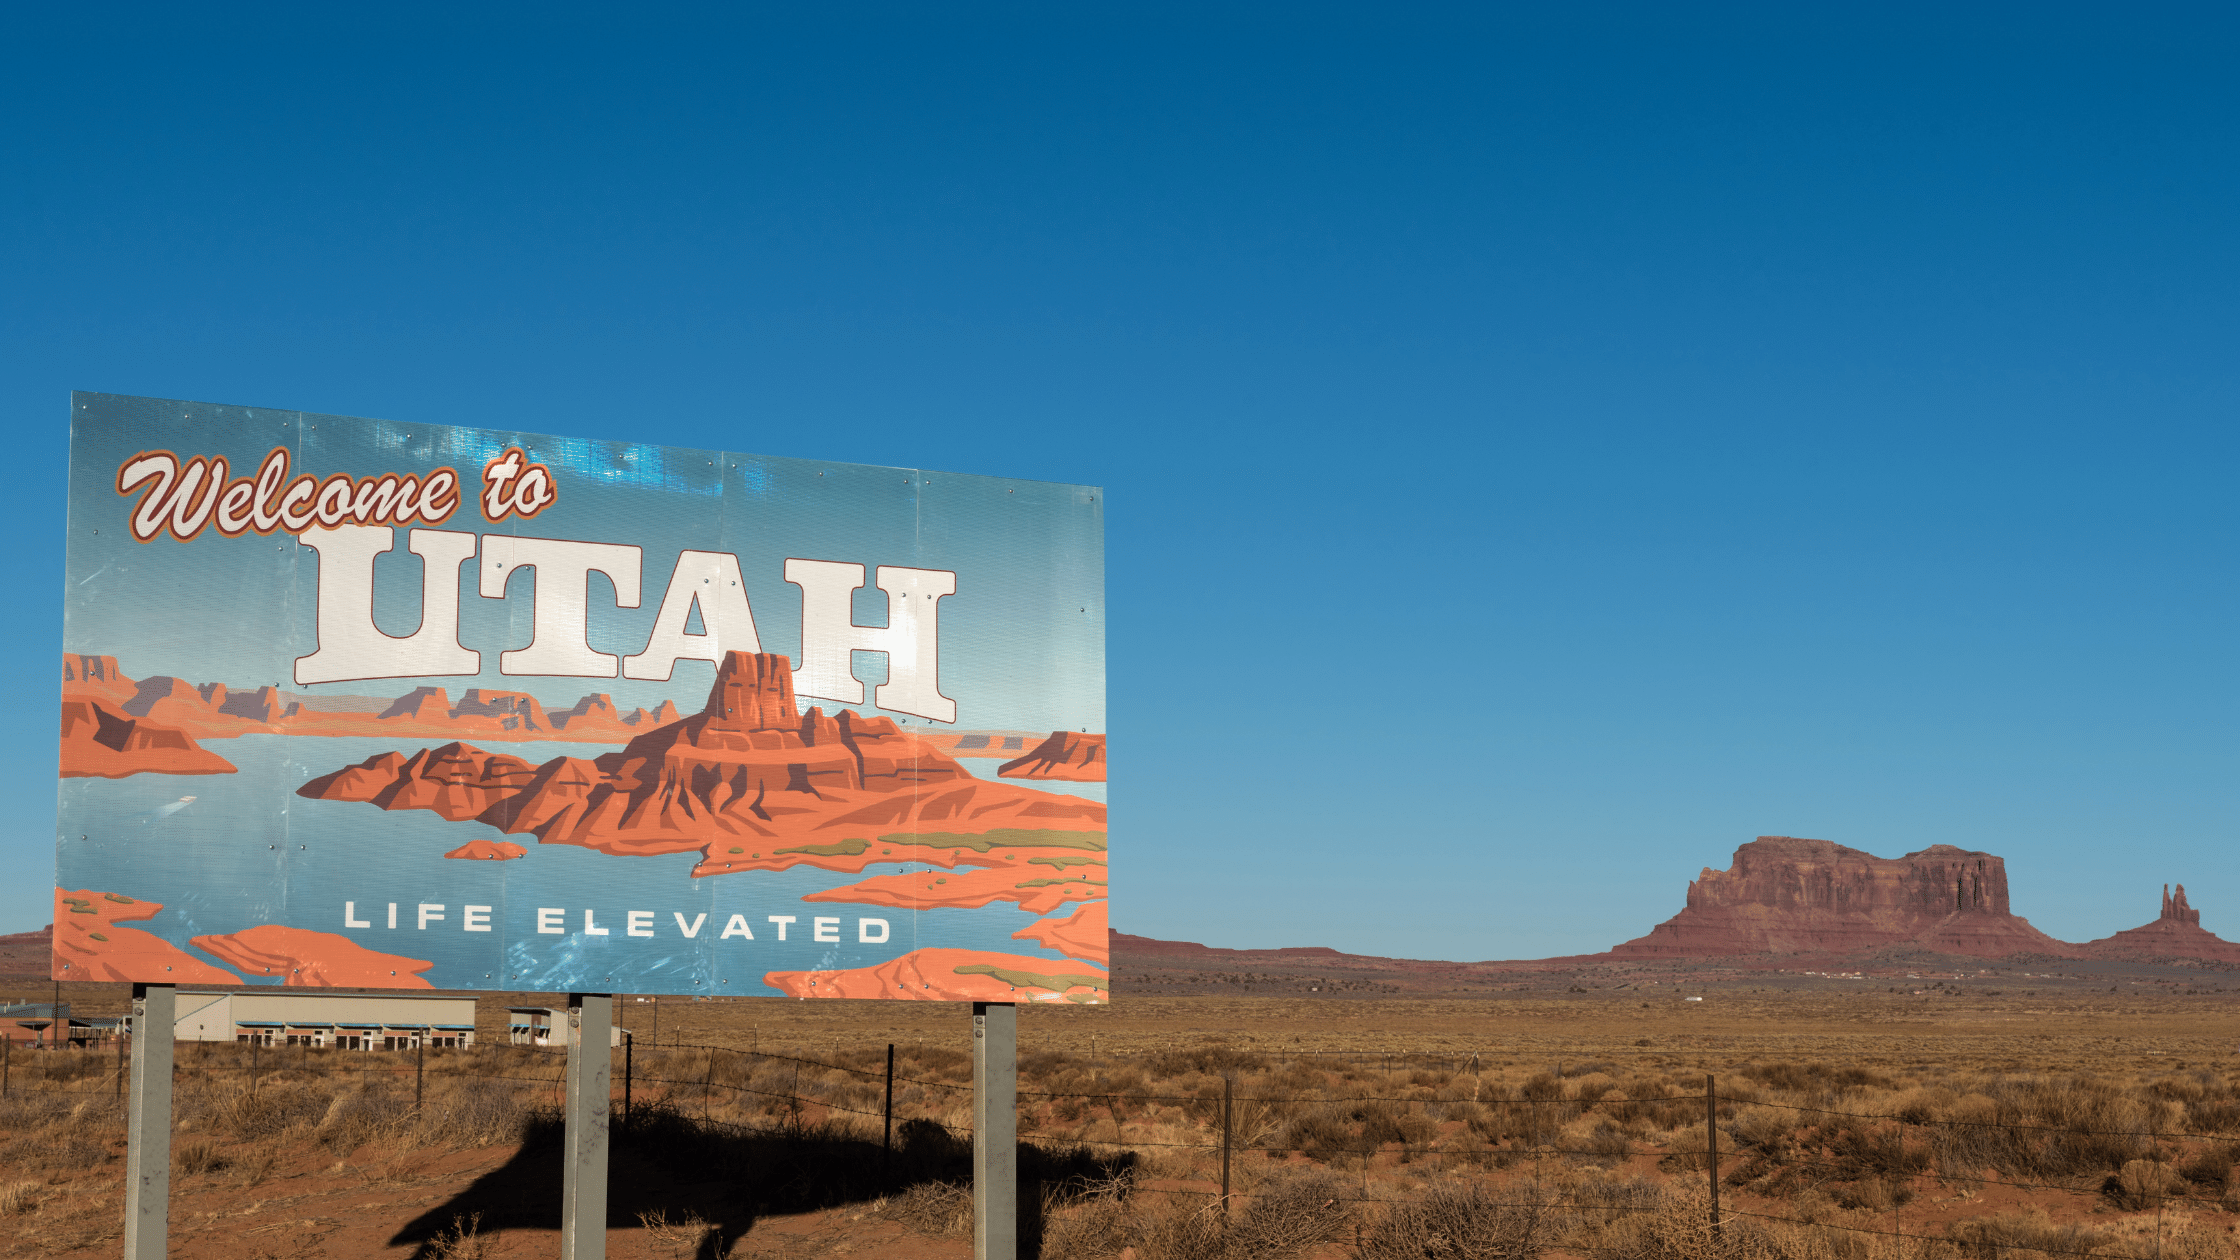 Welcome to Utah sign in the foreground, mountain butte in the background